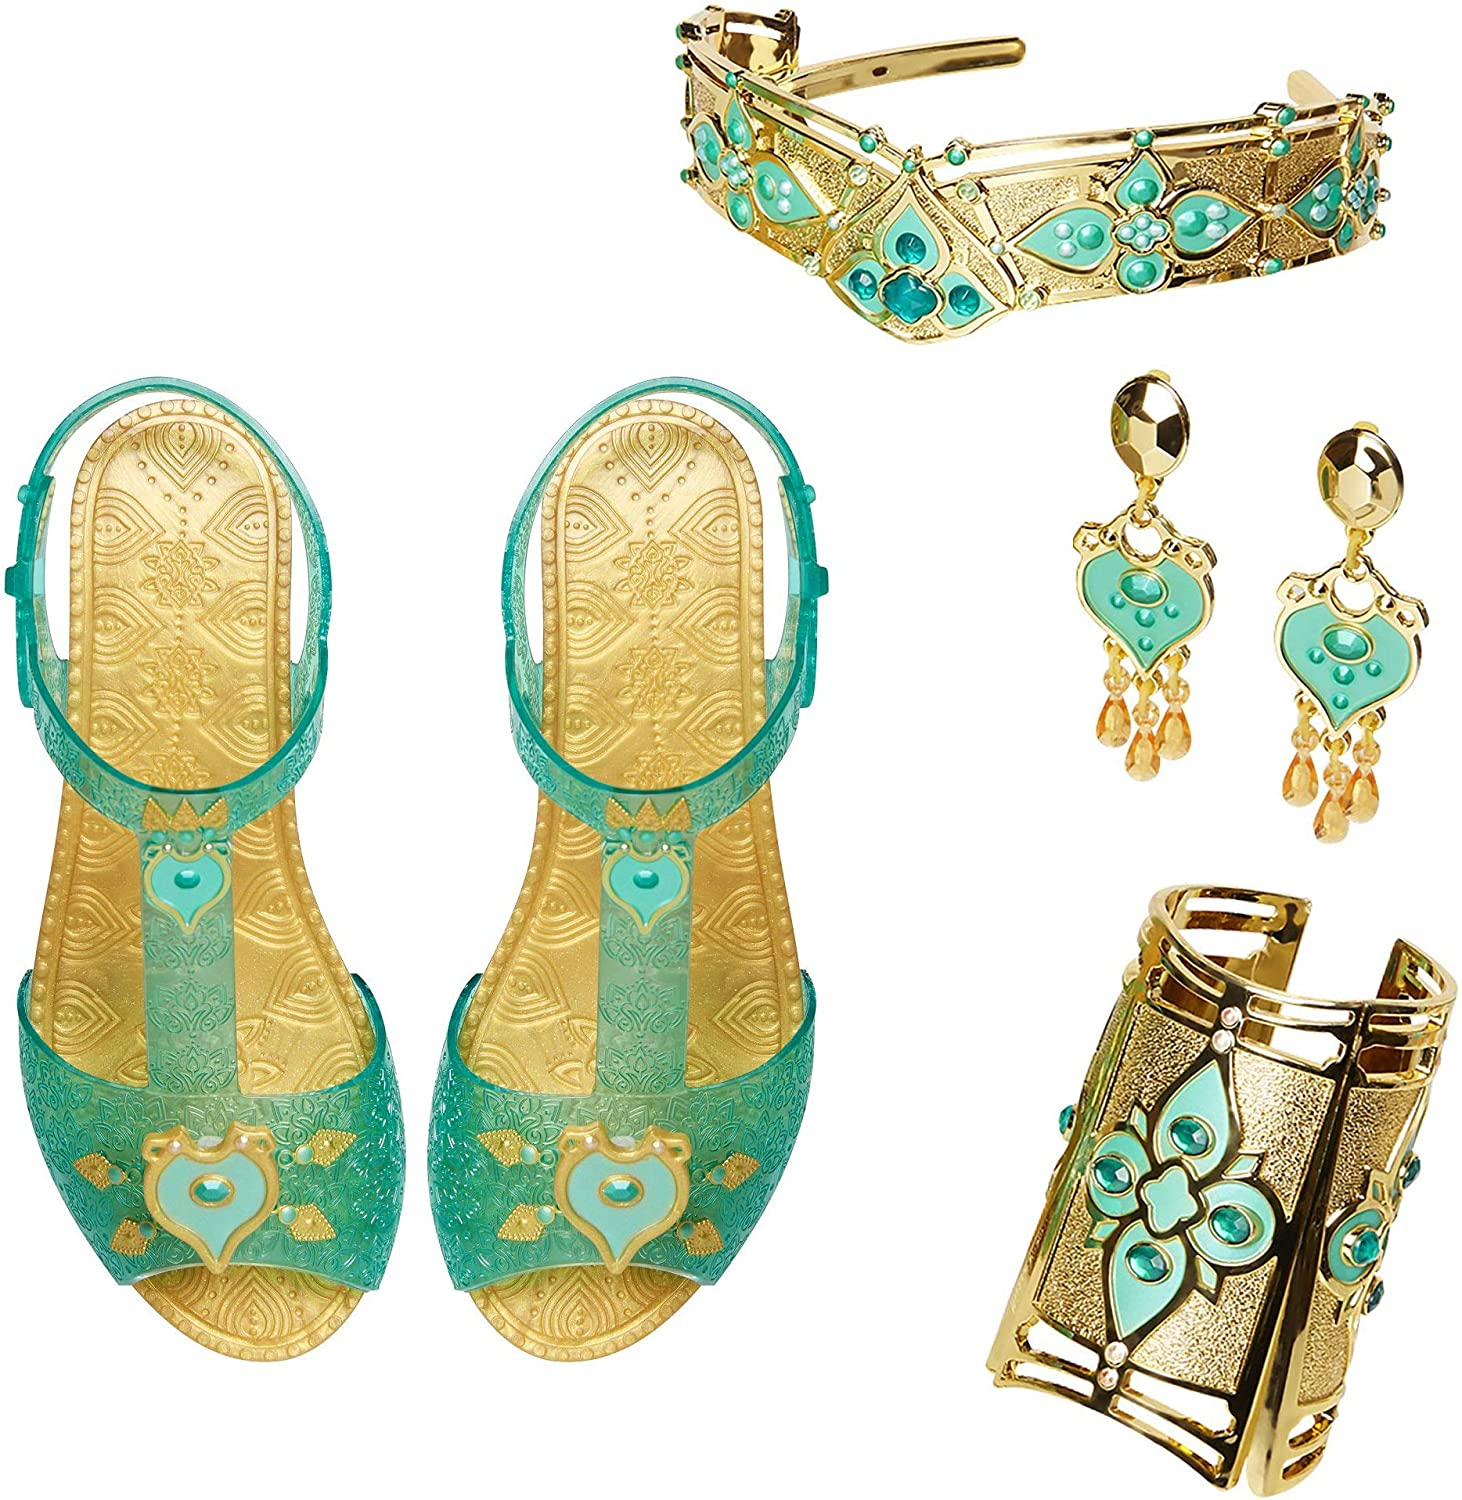 Aladdin Today's only Disney Jasmine Deluxe Royal Sho Accessory Set Includes: Fixed price for sale